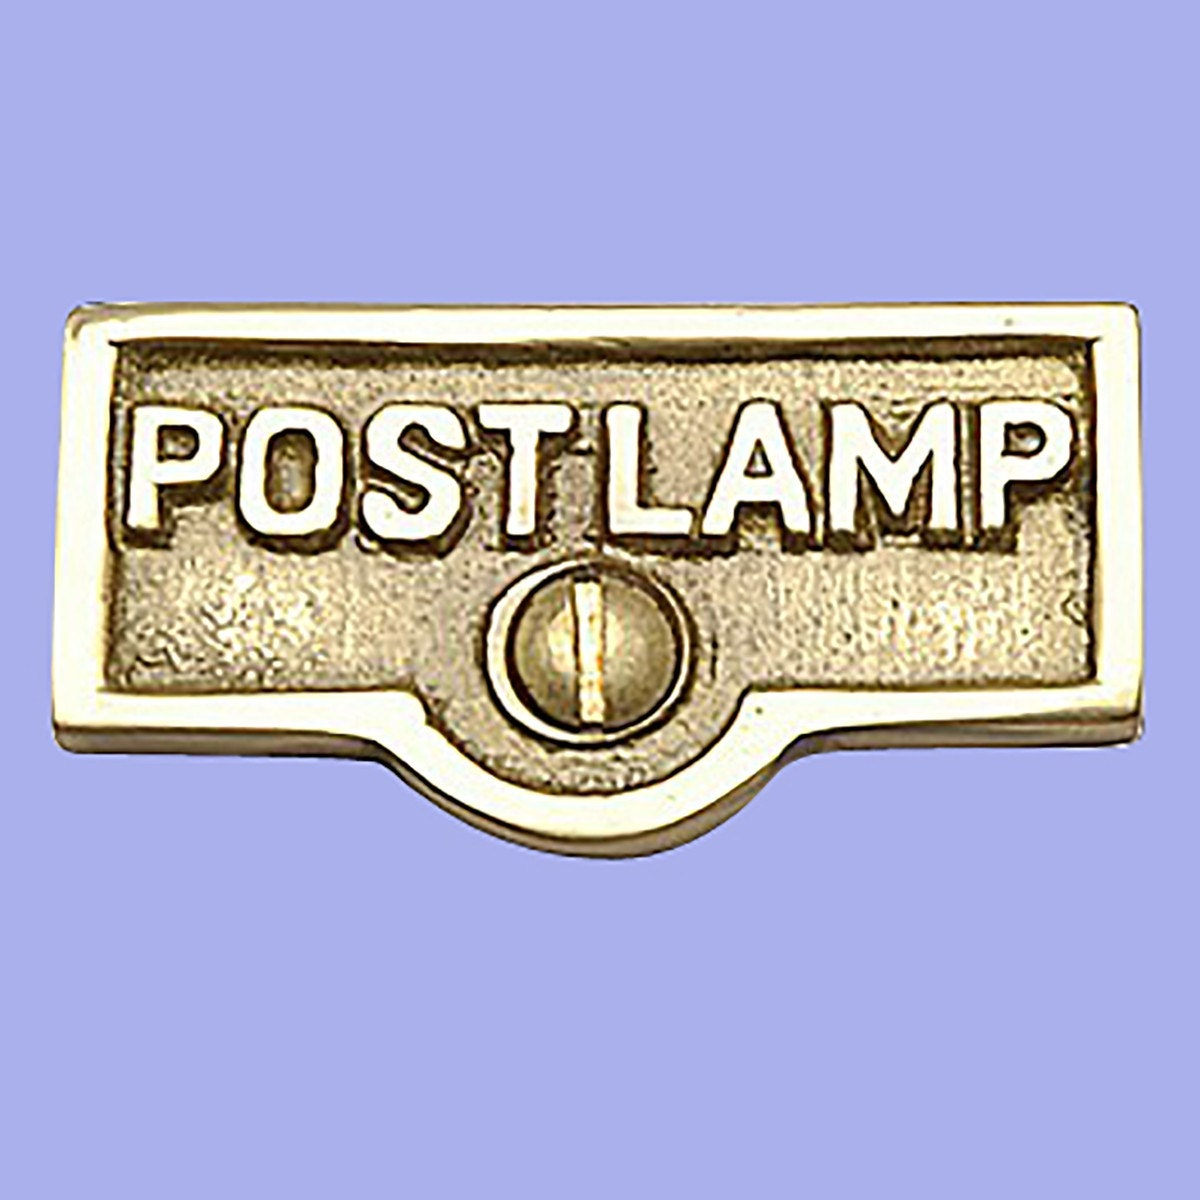 Name Tag Master Post: 25 Switch Plate Tags Post Lamp Name Signs By